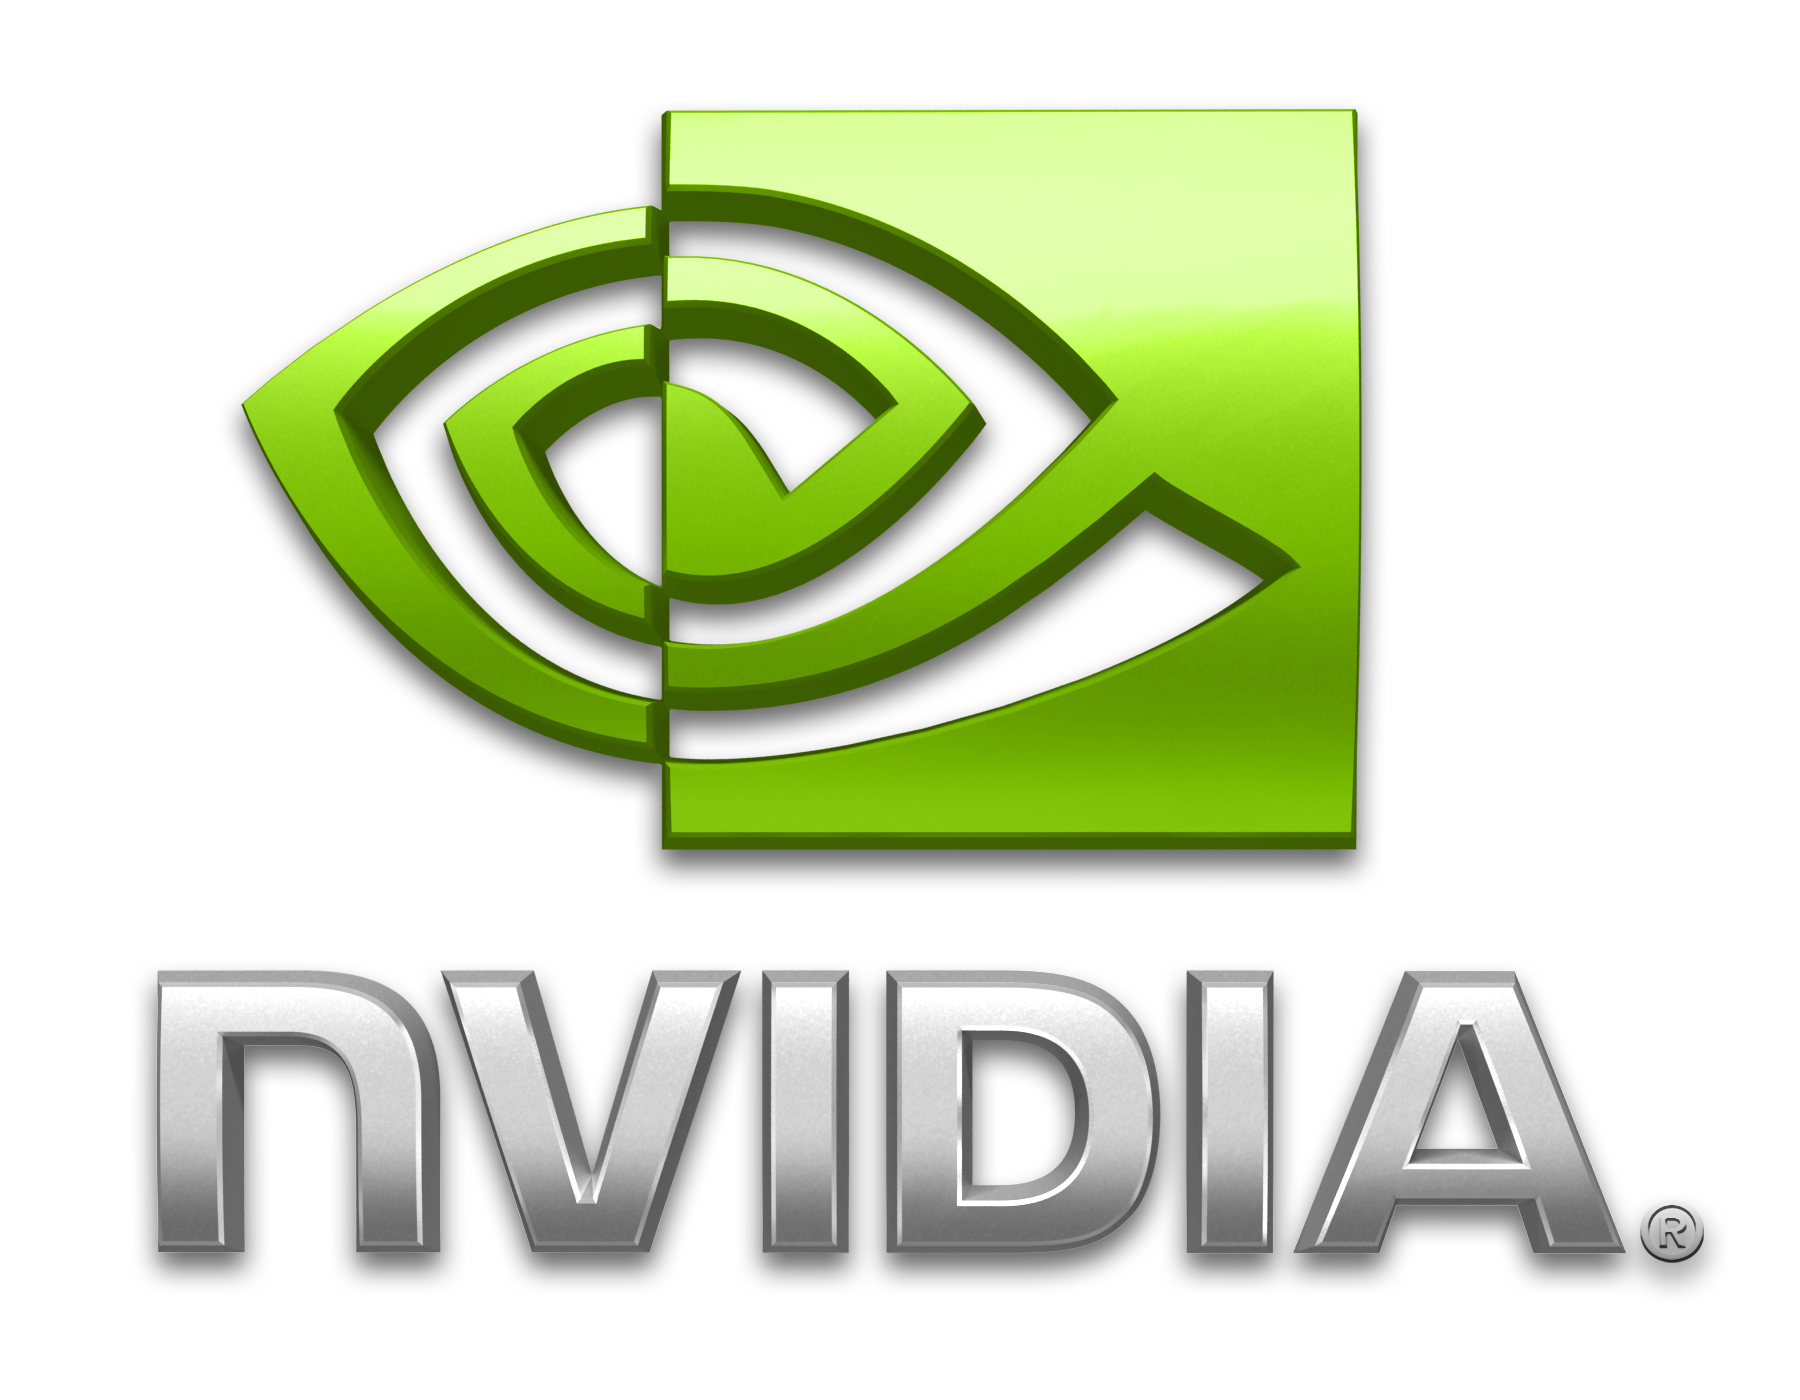 NVidiaLogo